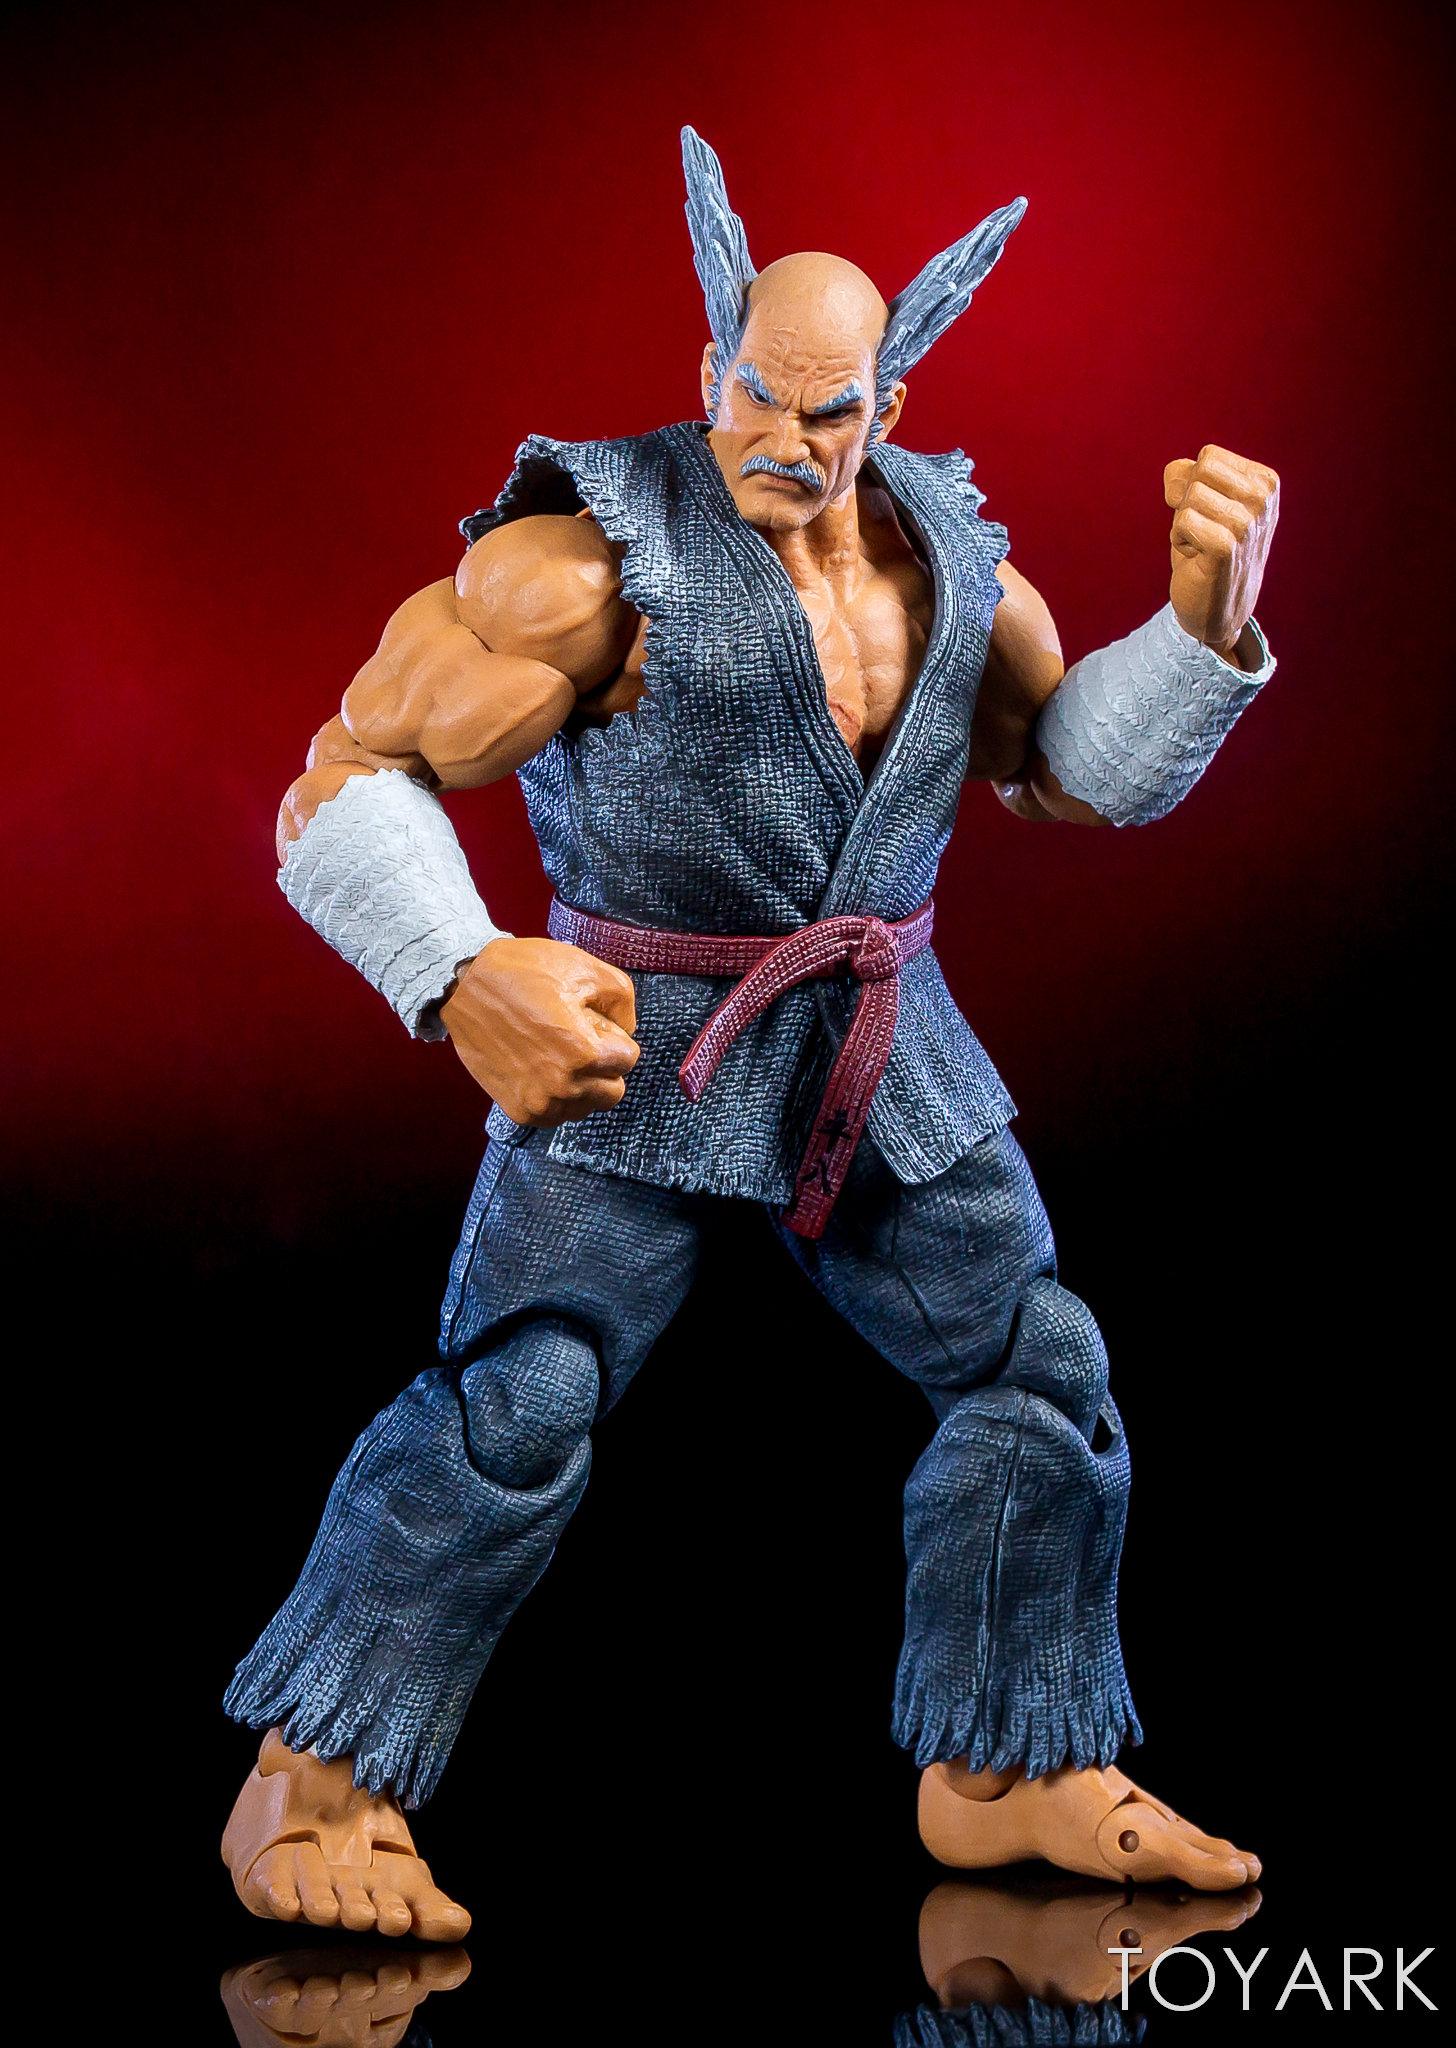 https://news.toyark.com/wp-content/uploads/sites/4/2018/05/Storm-Heihachi-Figure-005.jpg